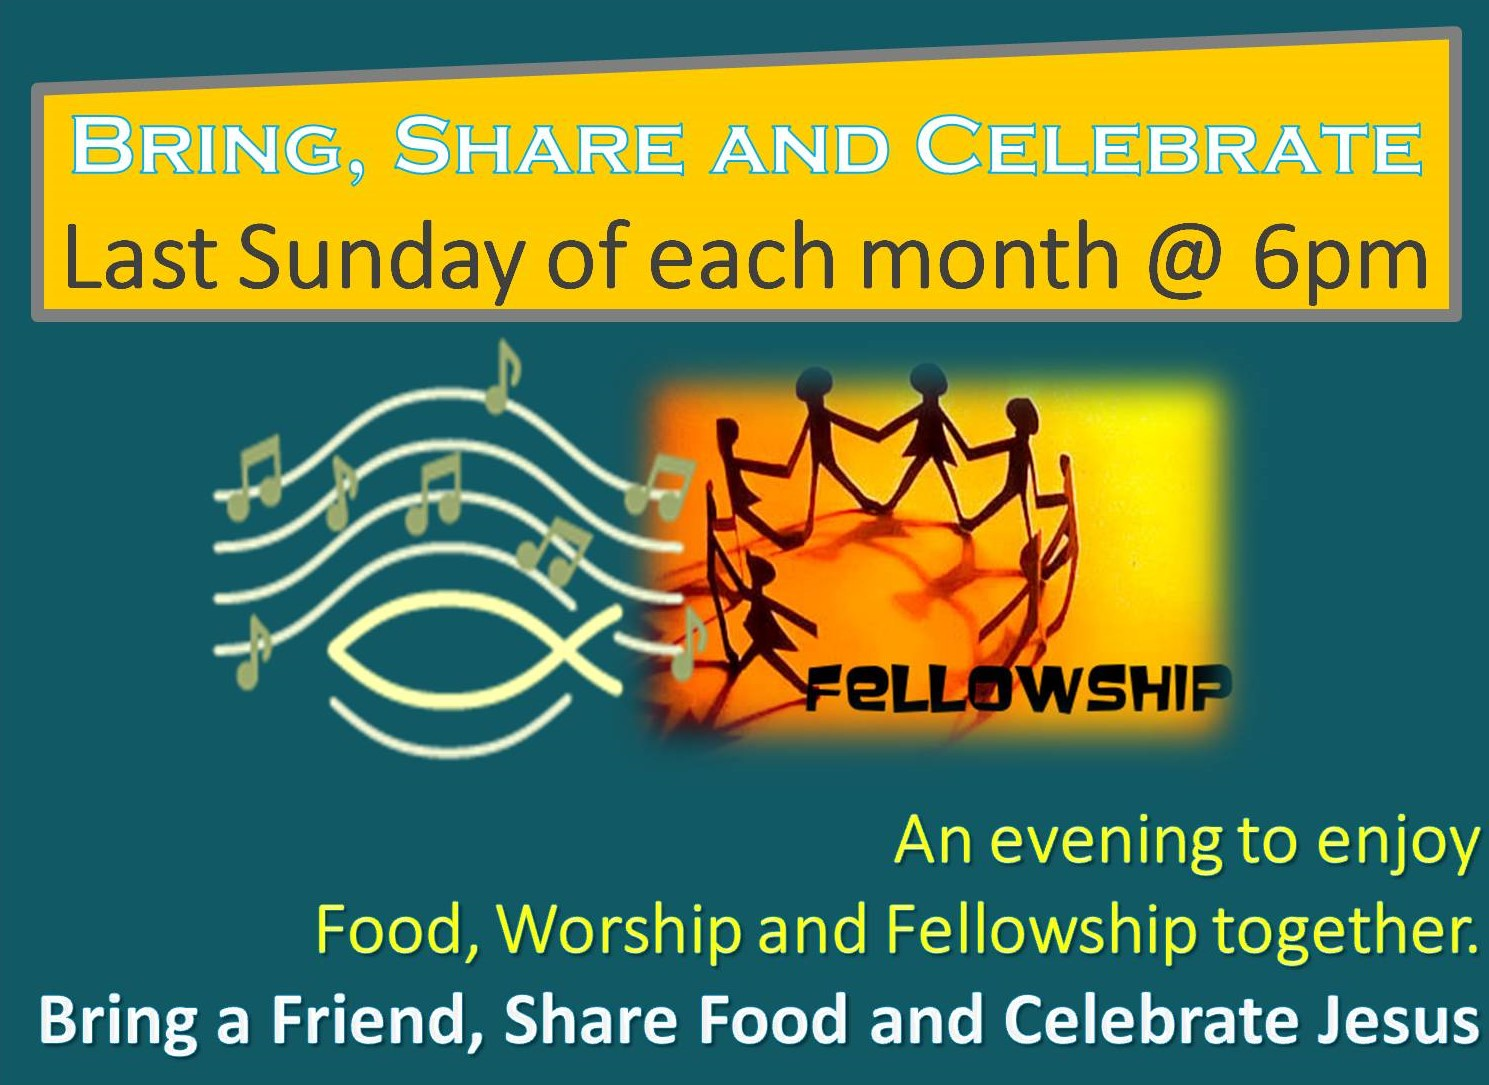 Bring share and celebrate